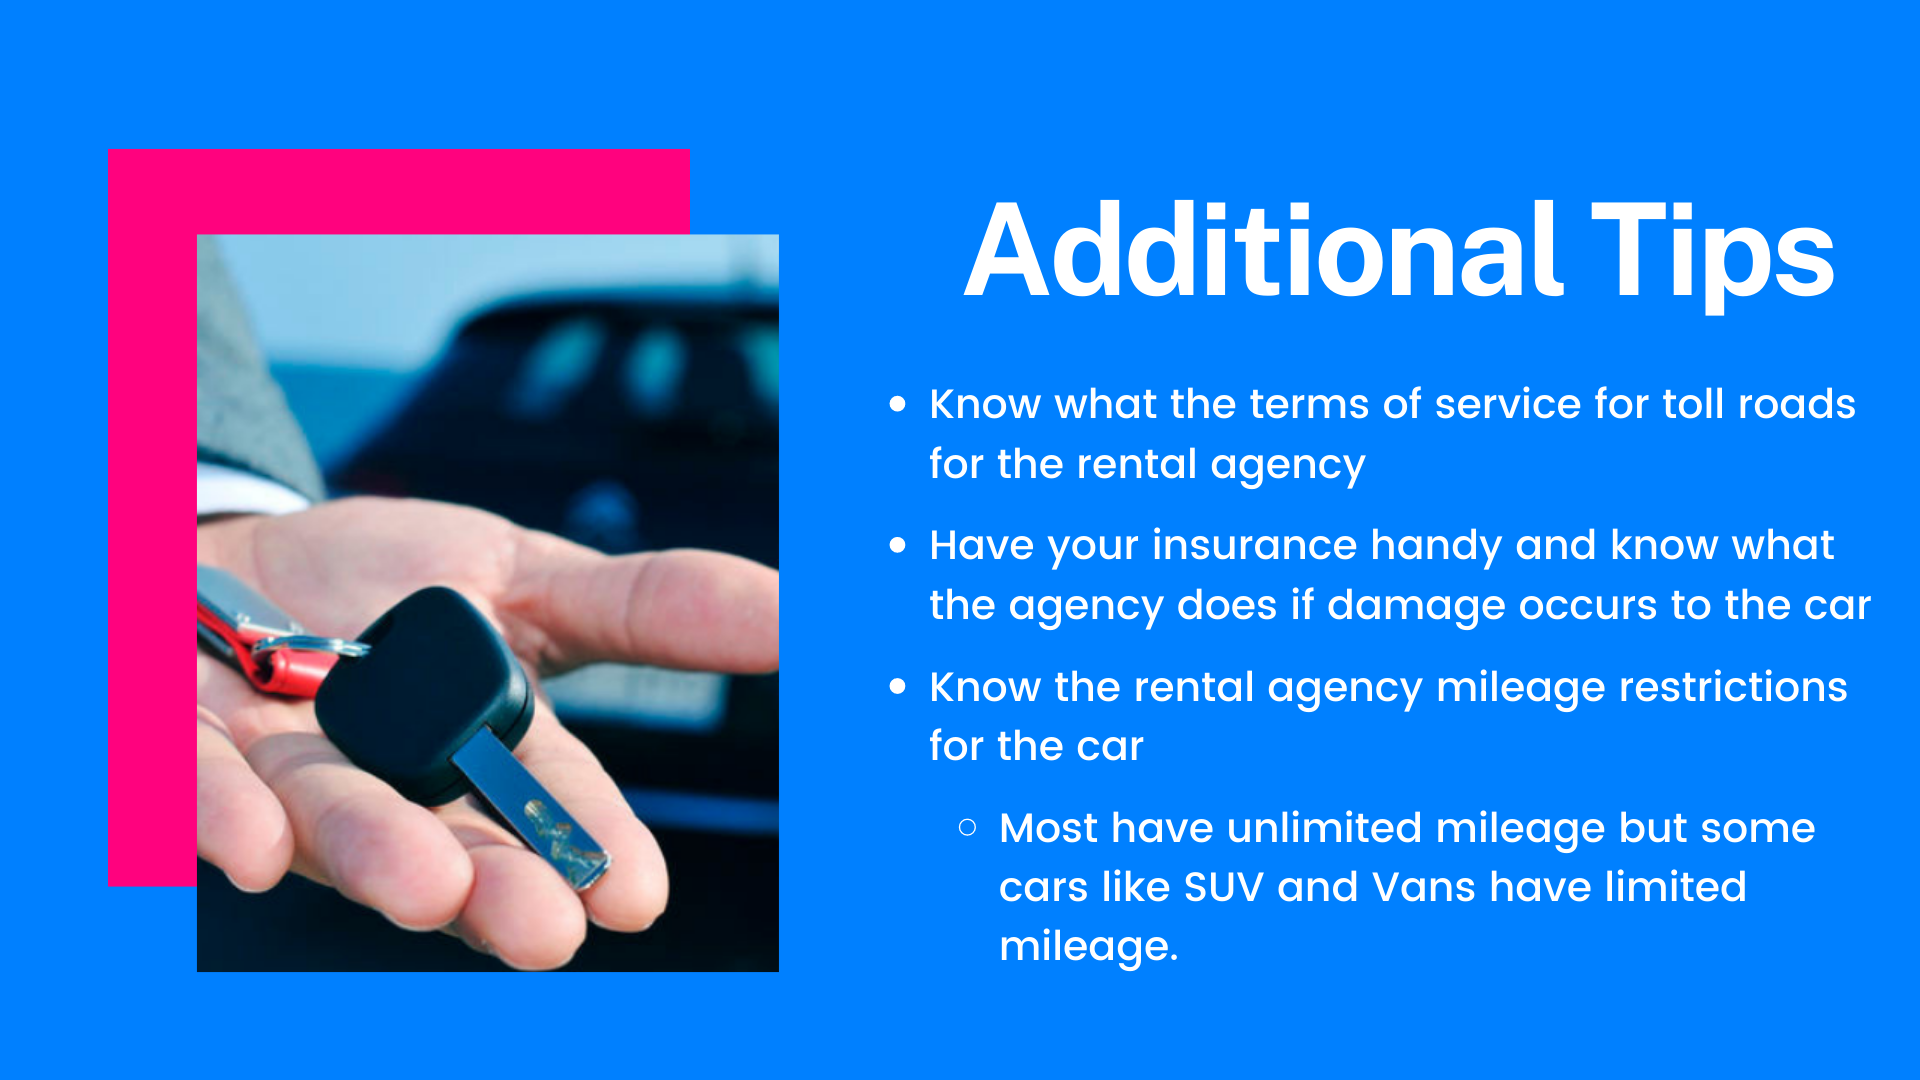 Know what the terms of service for toll roads for the rental agency. Have your insurance handy and know what the agency does if damage occurs to the car. Know the rental agency mileage restrictions for the car (Most have unlimited mileage but some cars like SUV and Vans have limited mileage)